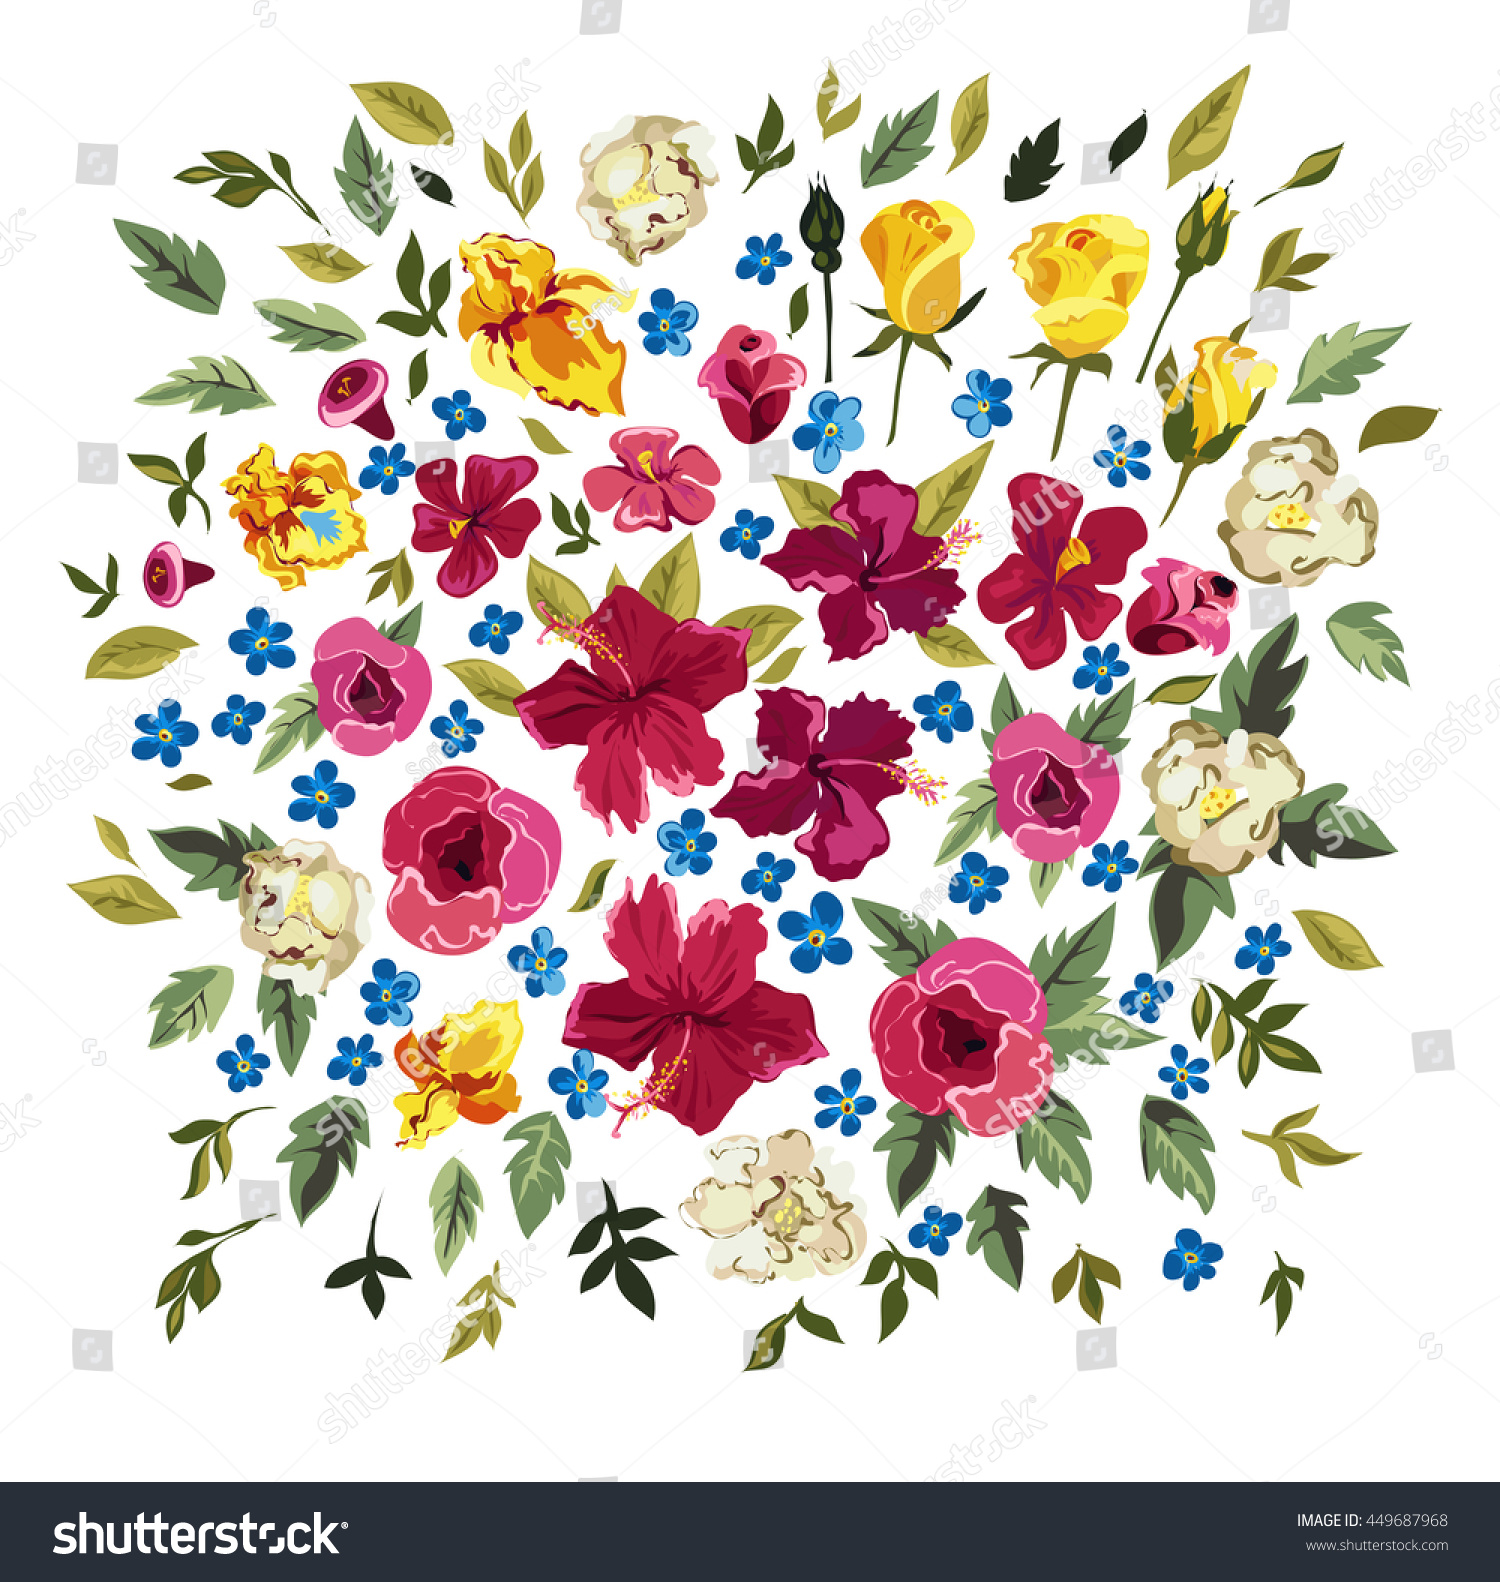 Colorful Floral Collection Leaves Flowers Design Stock Vector